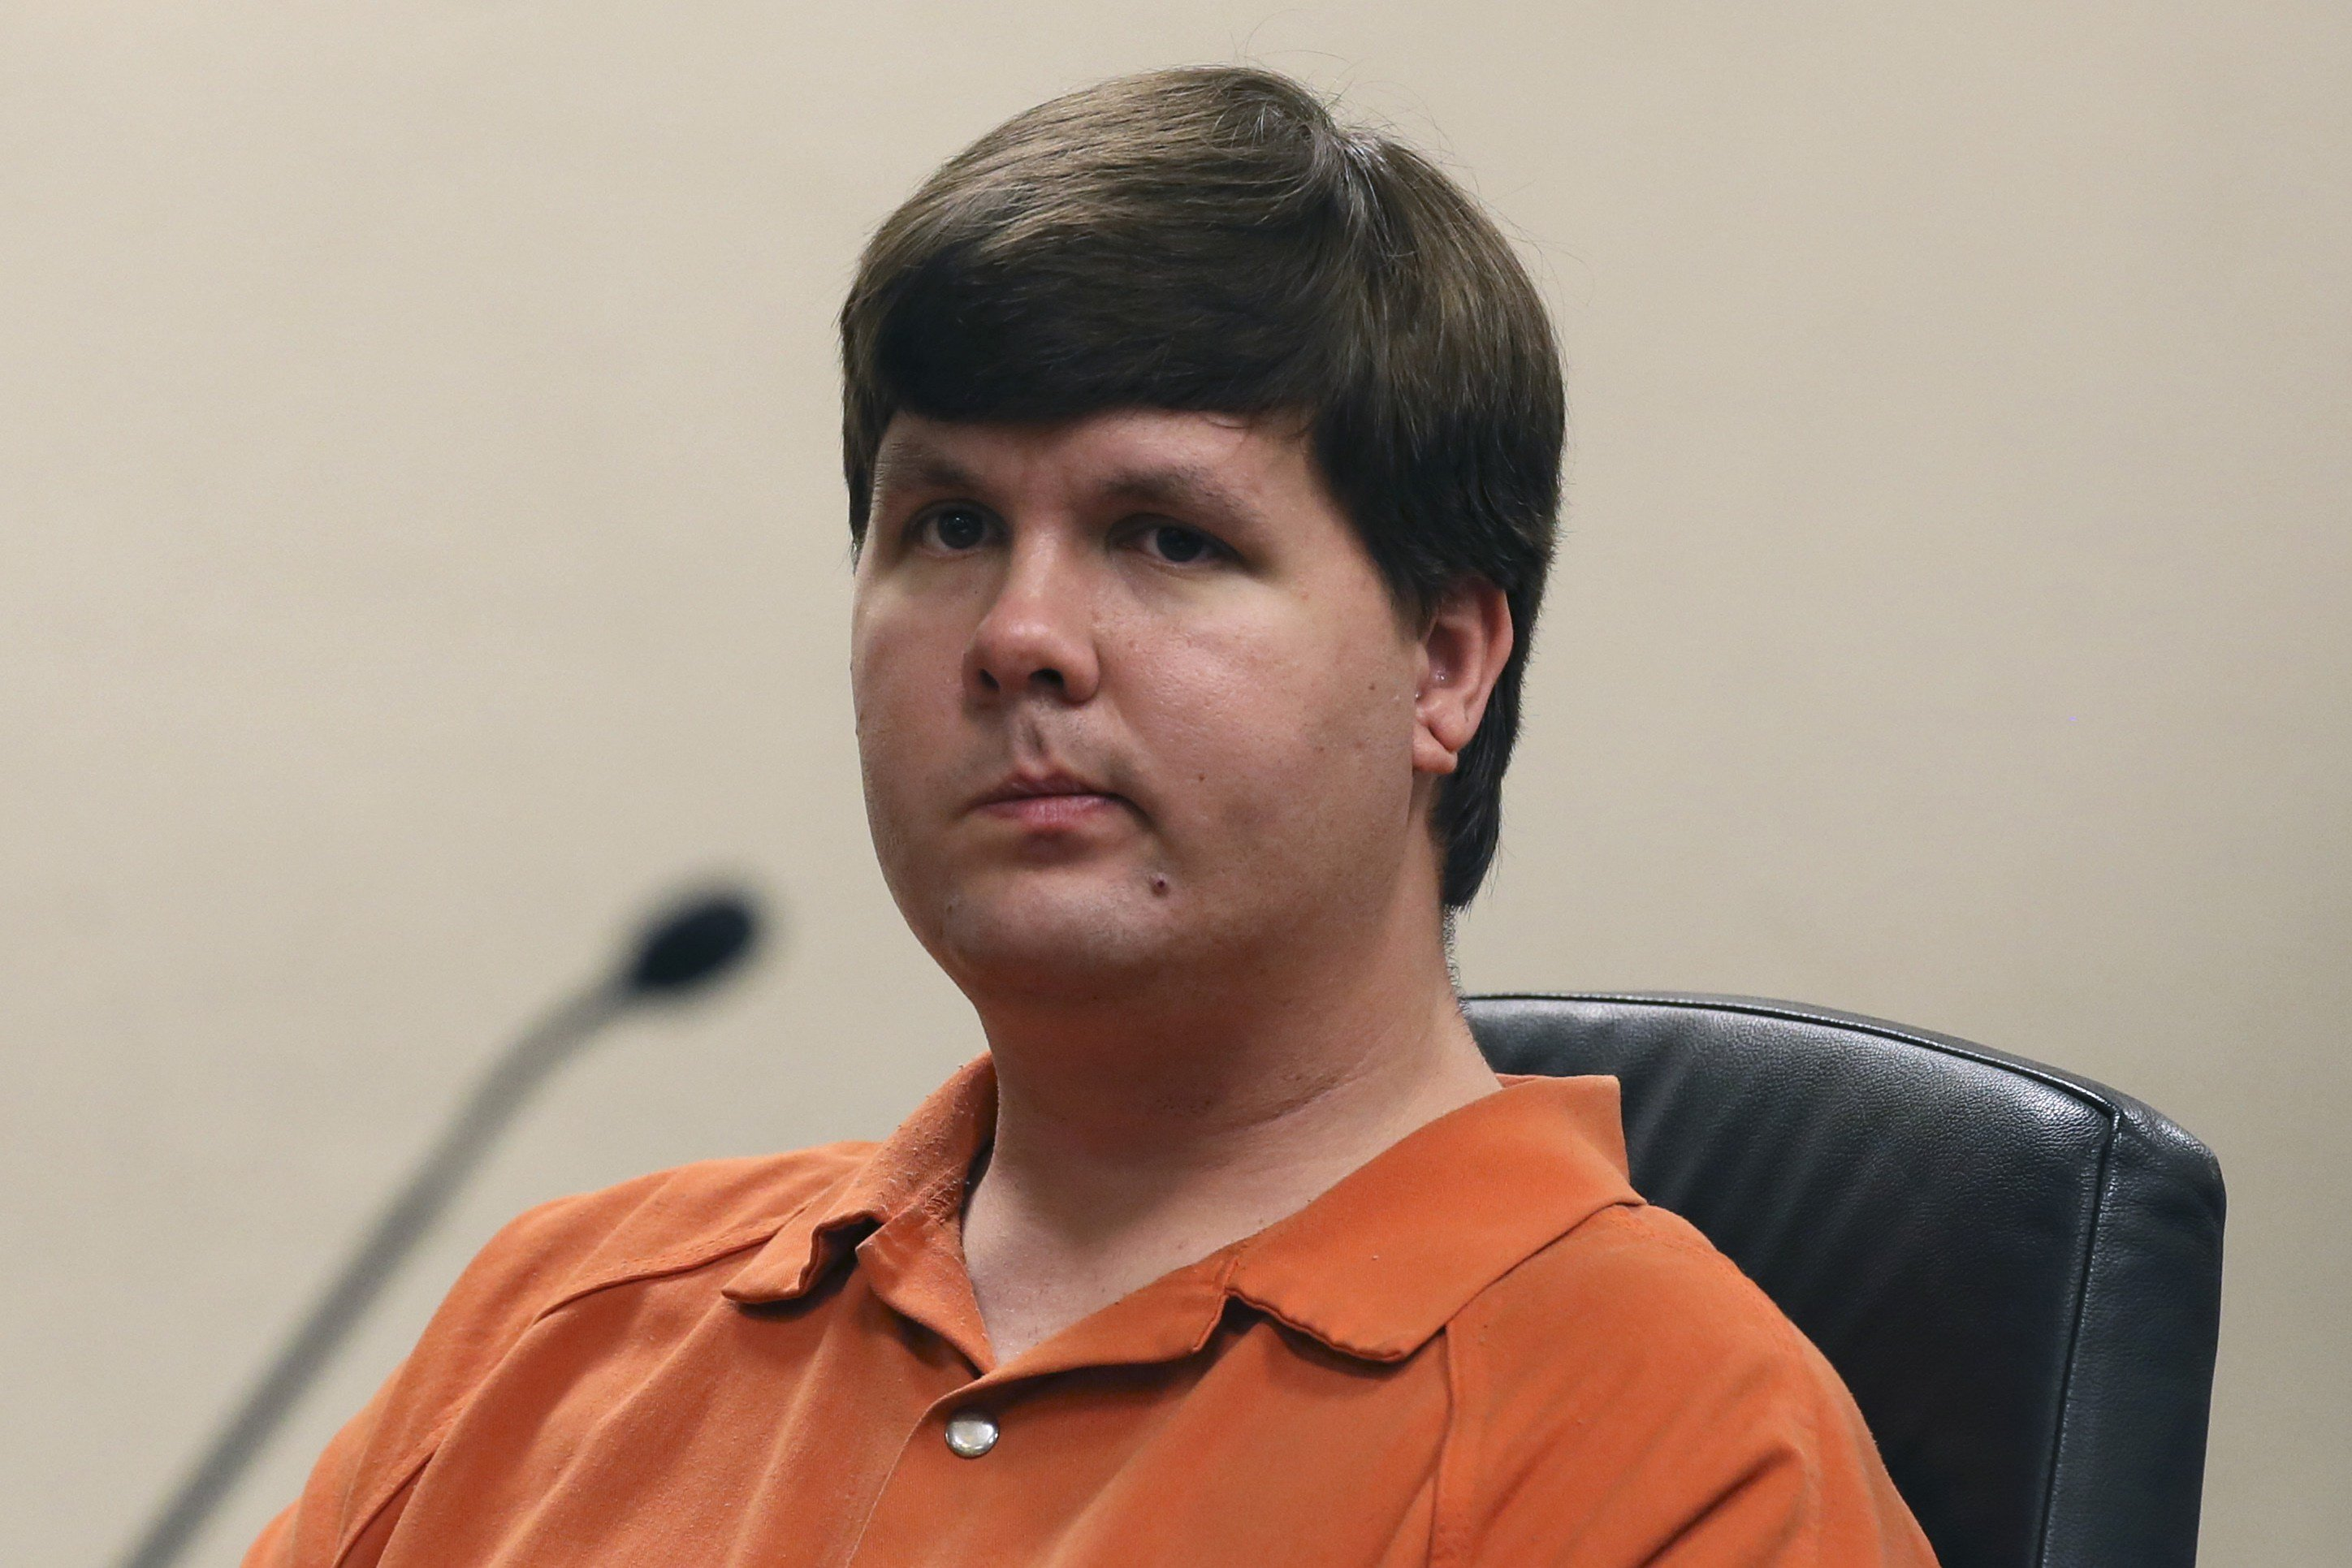 Justin Ross Harris sits in Cobb County Magistrate Court in Marietta, Ga., on July 3, 2014